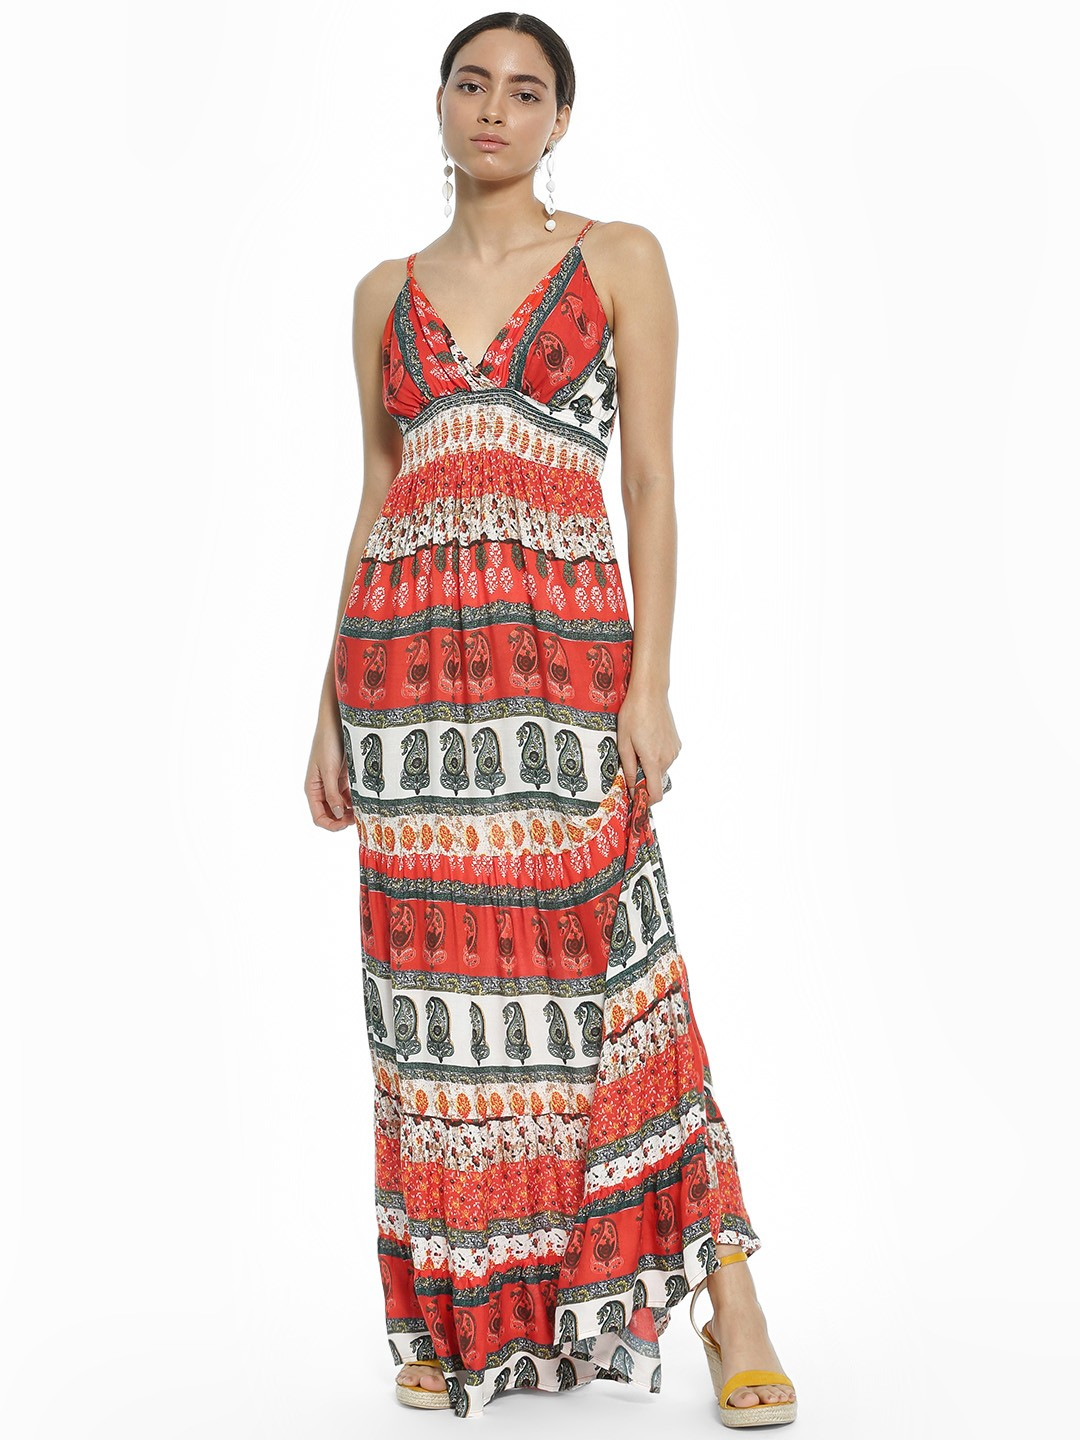 Kisscoast Multi Paisley Print Smocked Maxi Dress 1